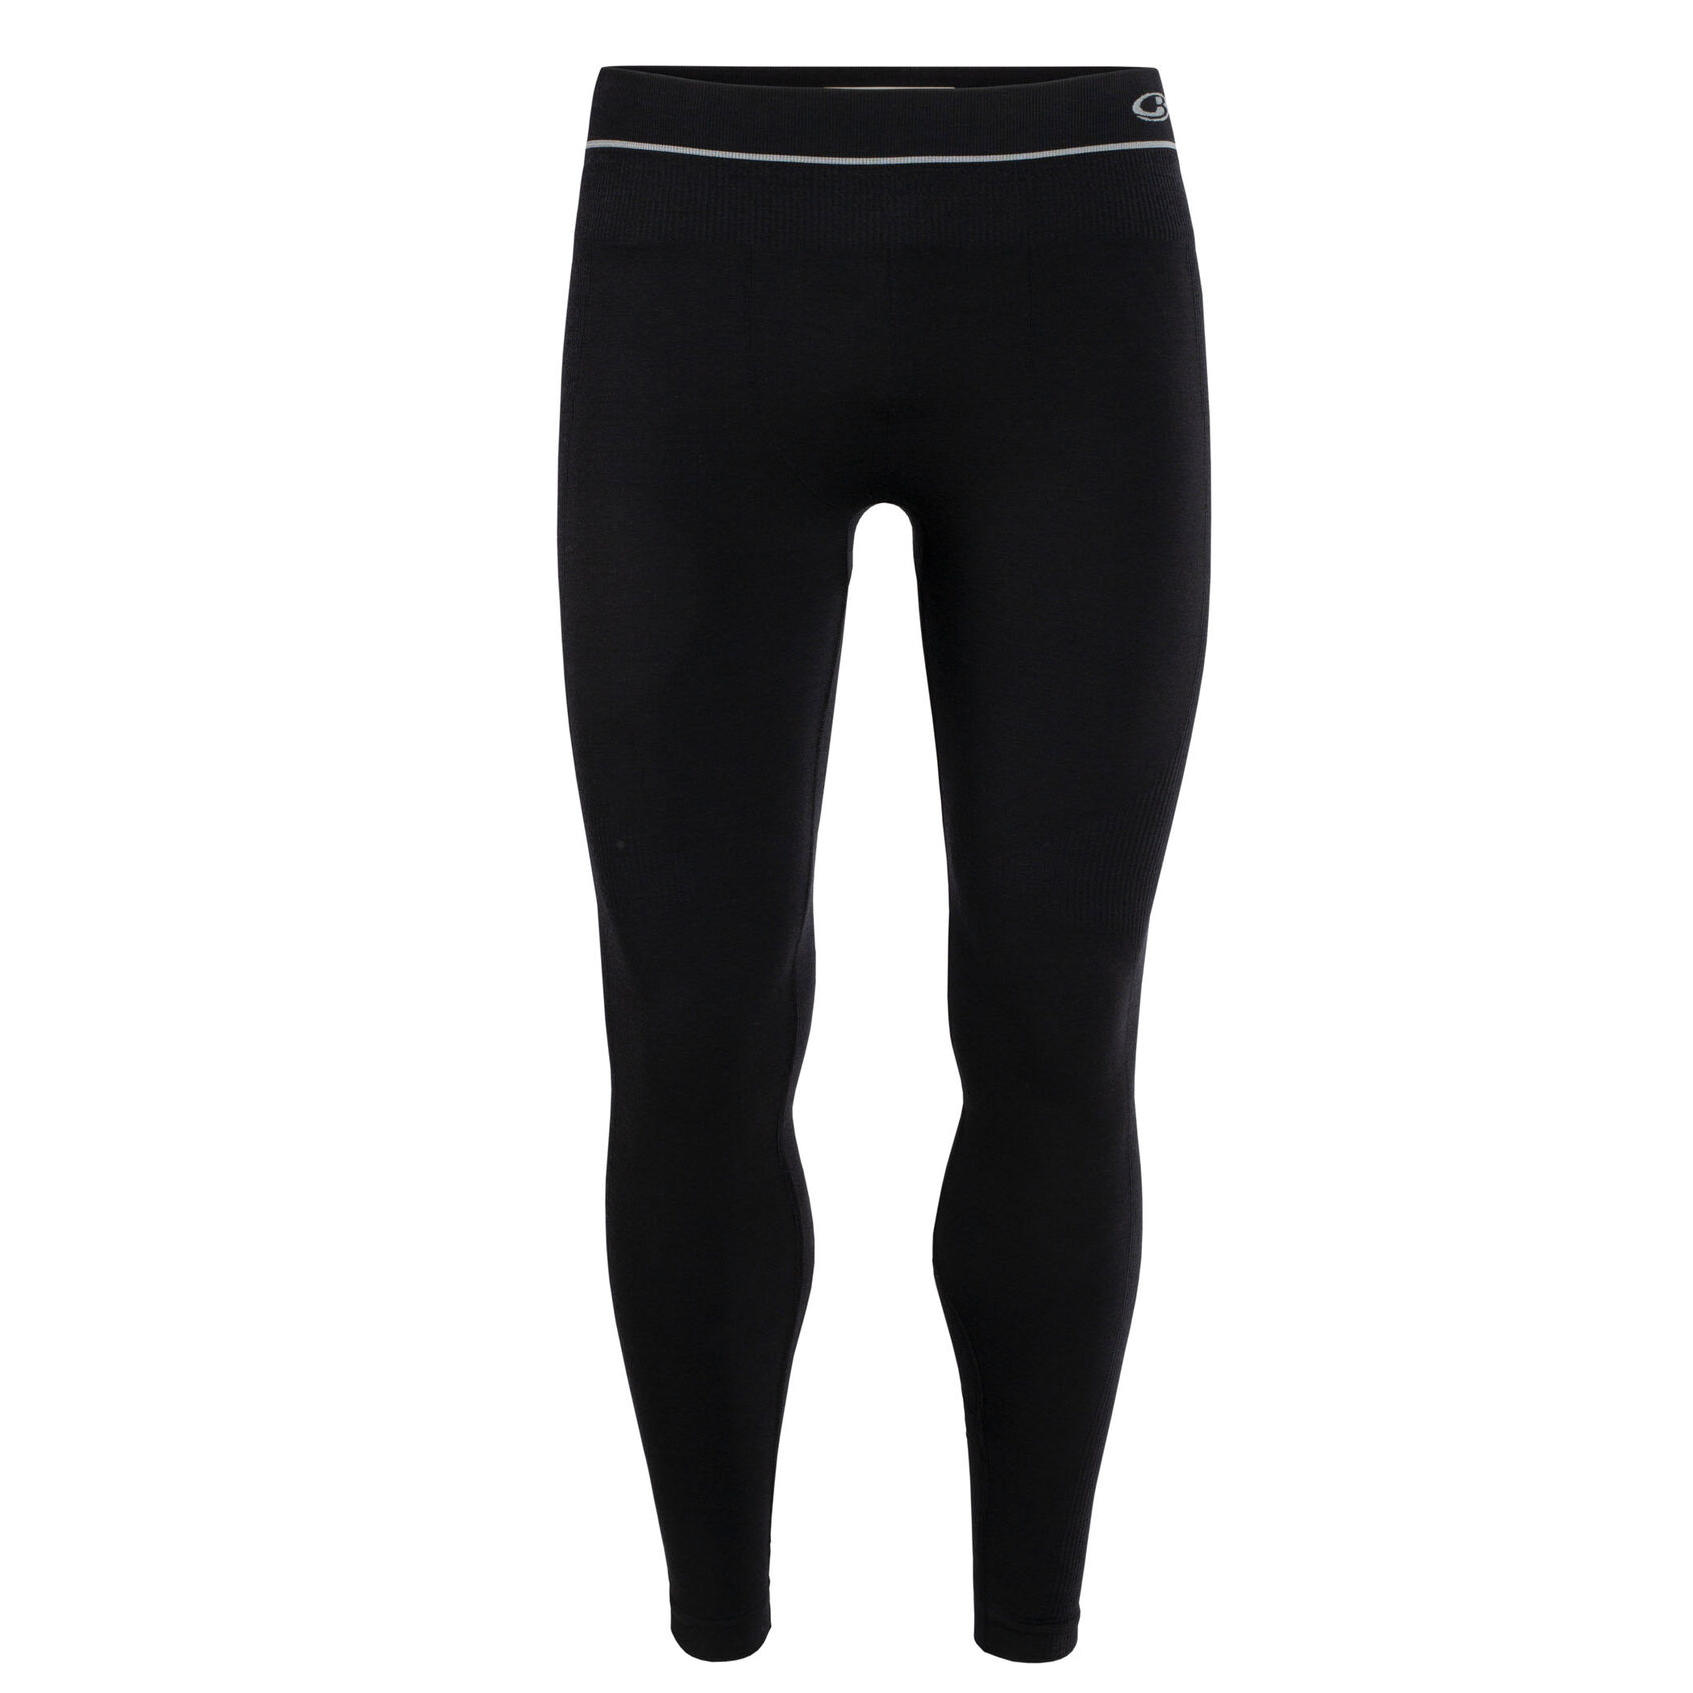 MOTION SEAMLESS TIGHTS - MEN'S